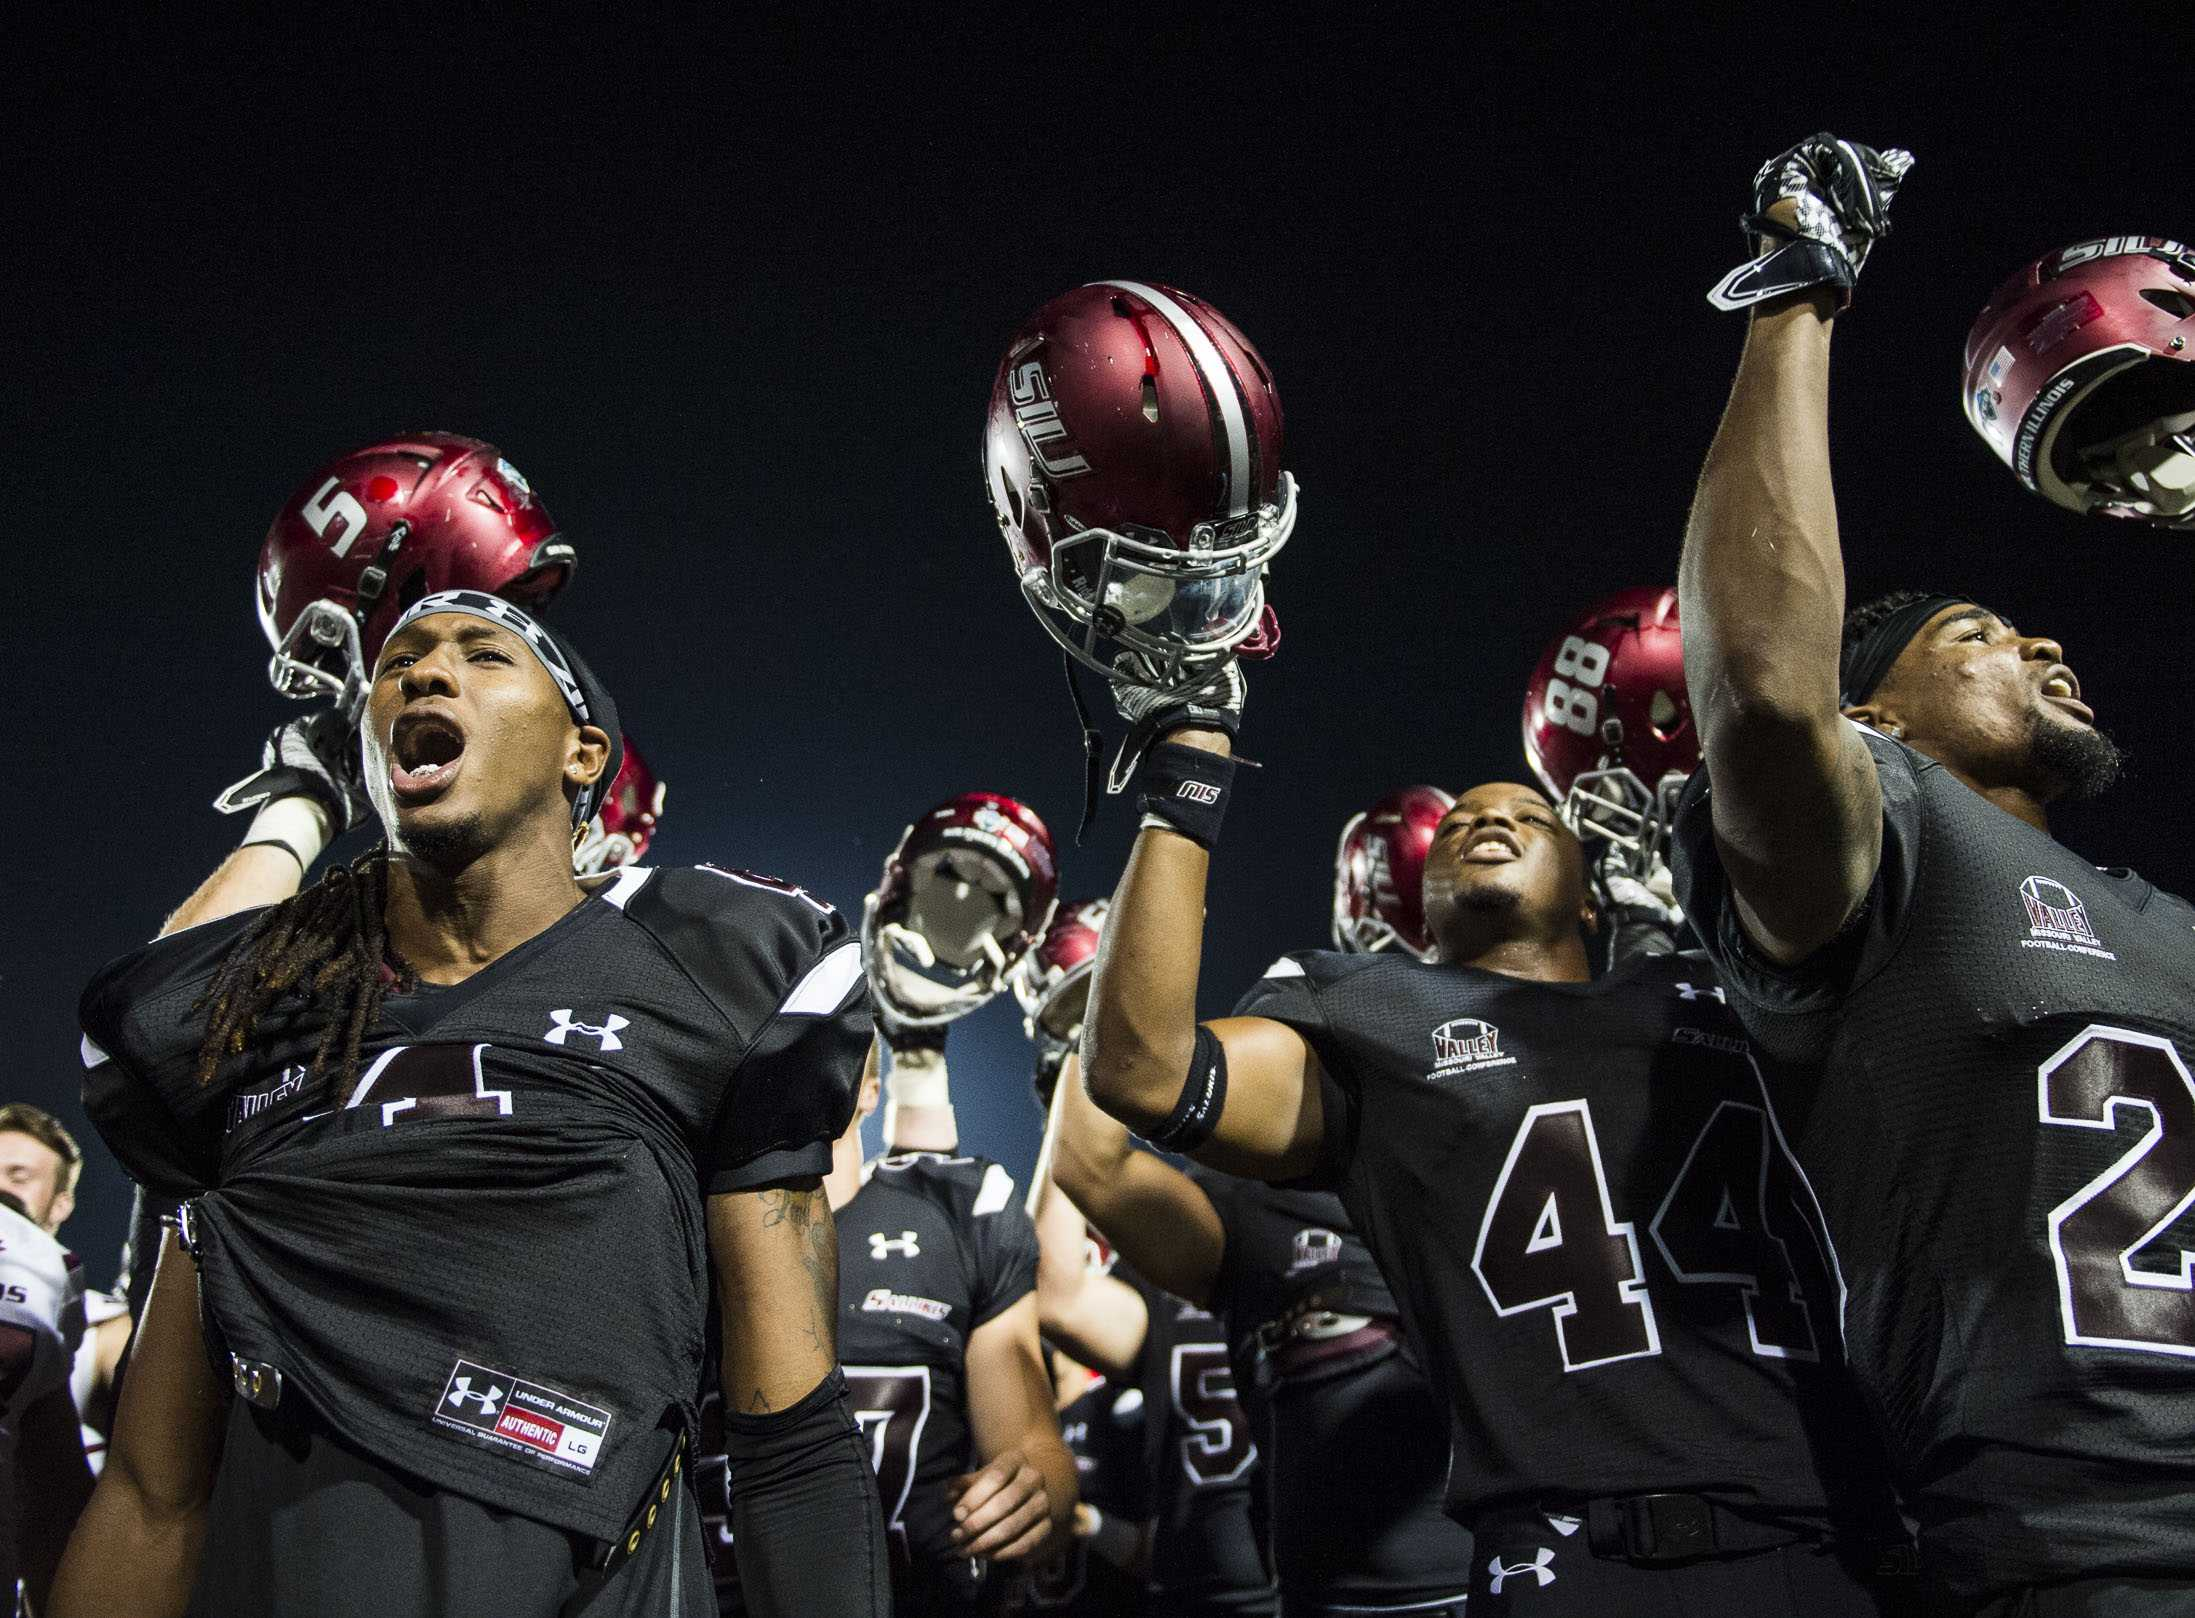 SIU football players celebrate following a 50-17 win over the Murray State Racers on Saturday, Sept. 17, 2016, at Saluki Stadium. (Ryan Michalesko | @photosbylesko)